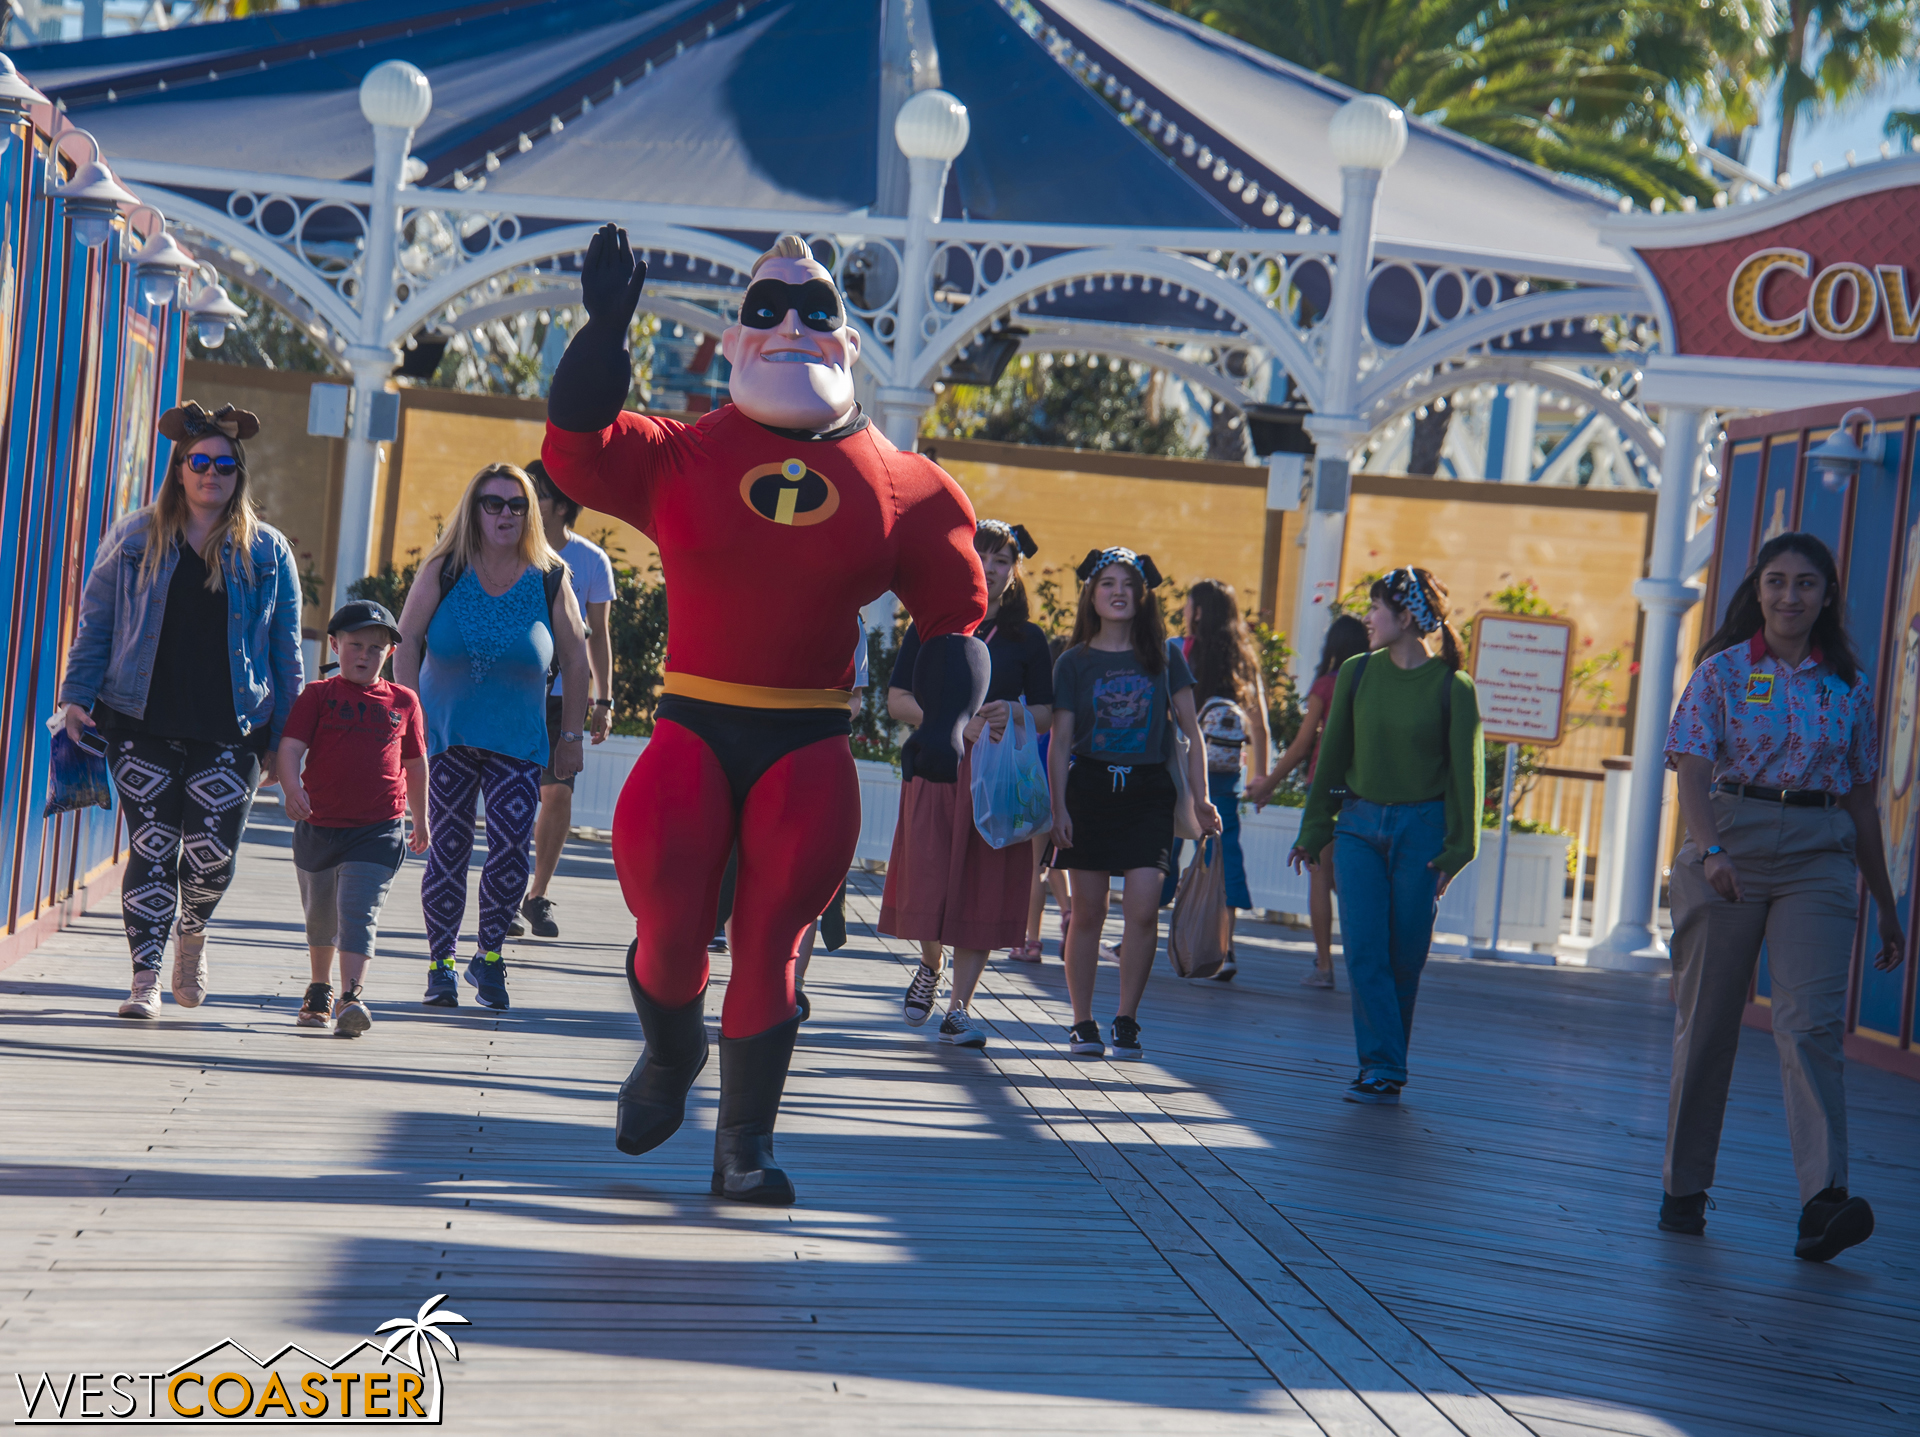 Mr. Incredible seems excited about all the changes.